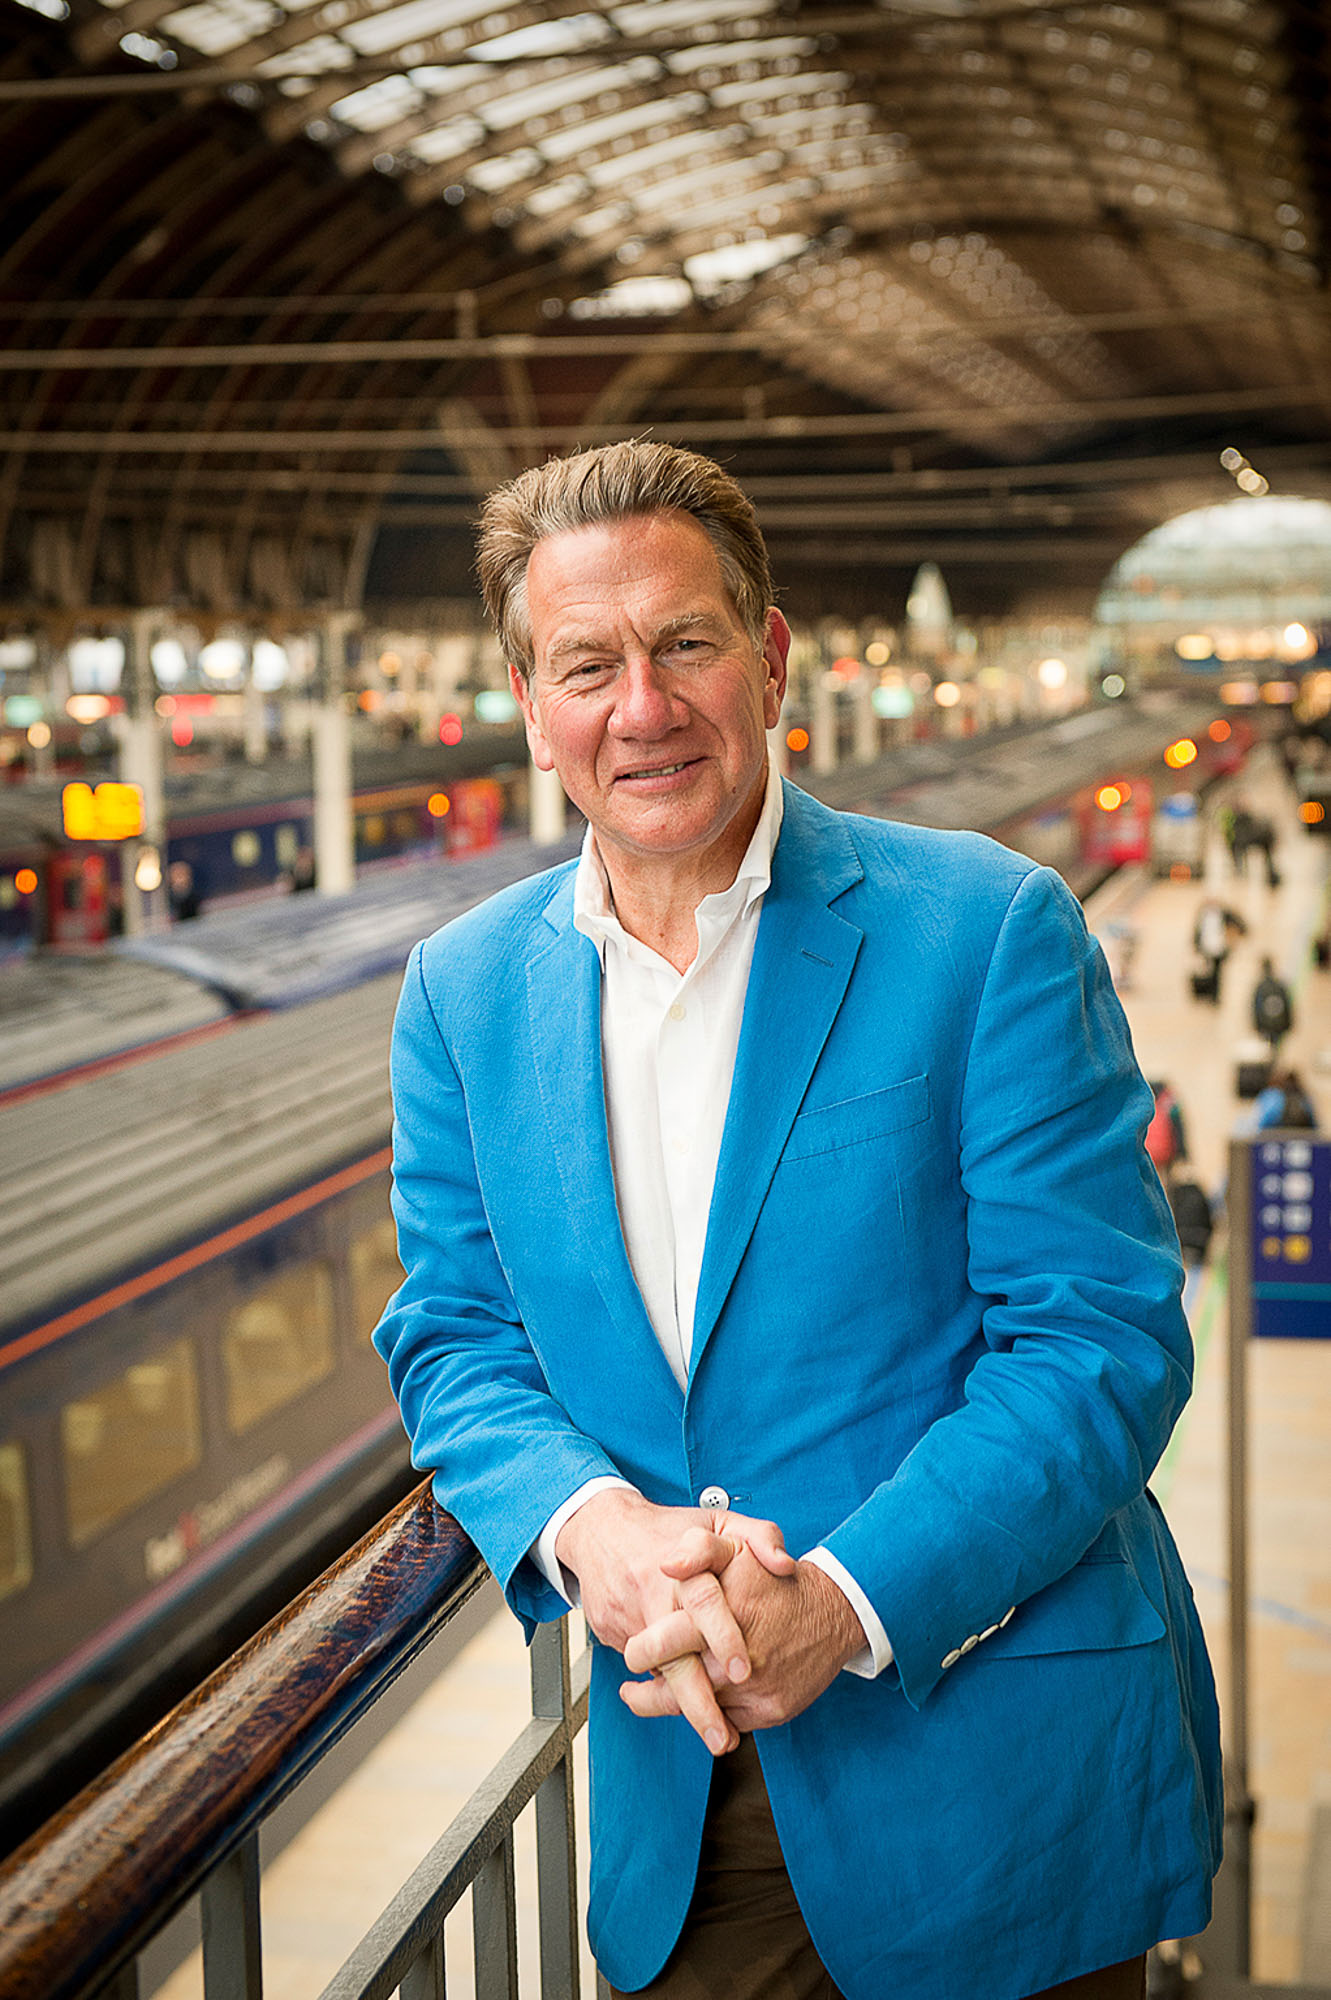 Michael Portillo - Broadcaster & Journalist